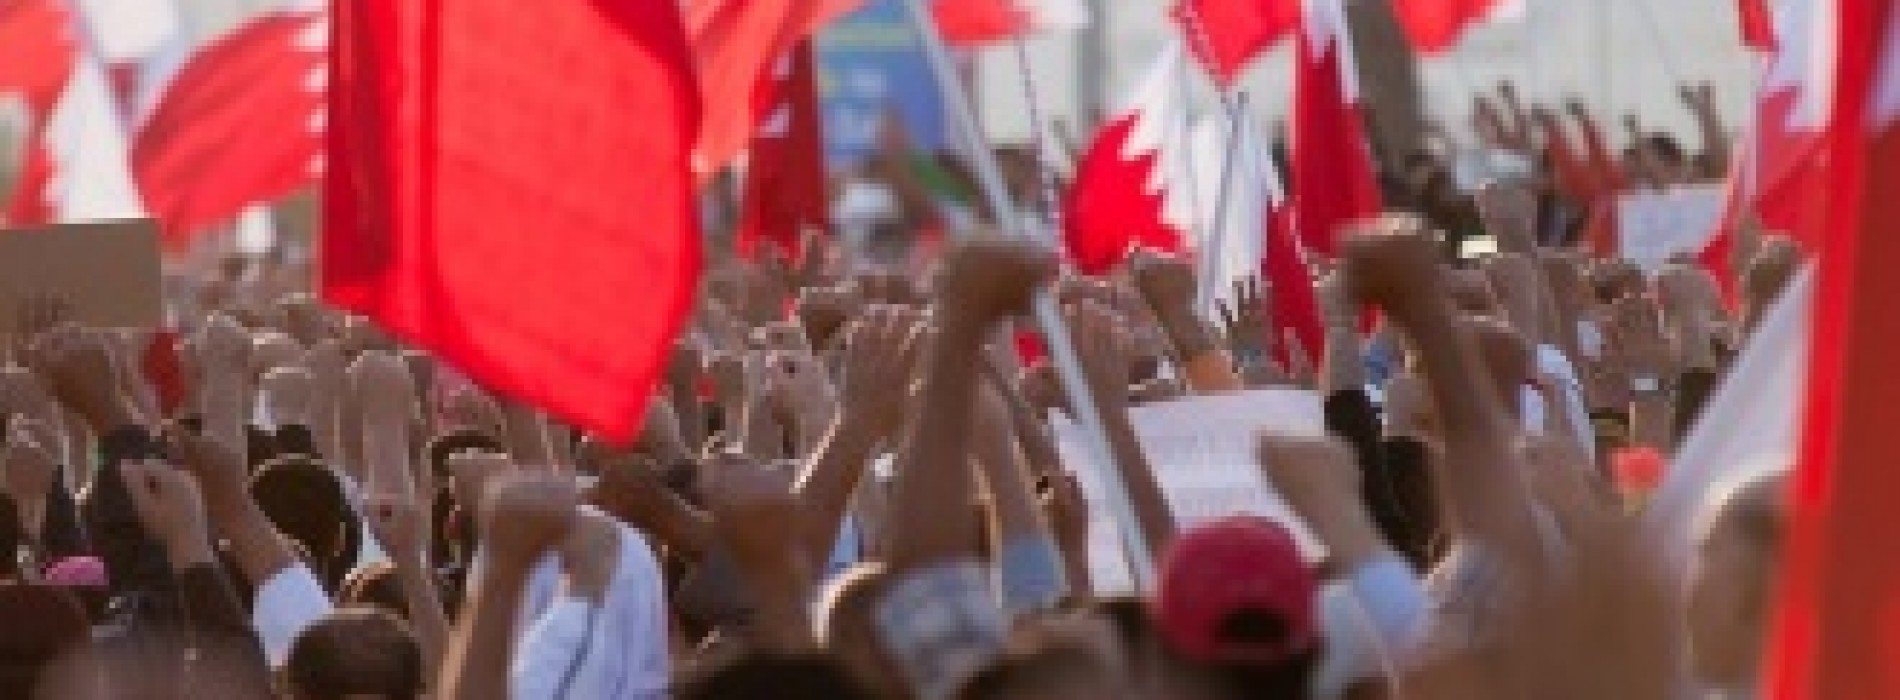 The Bahrain Uprising in Numbers